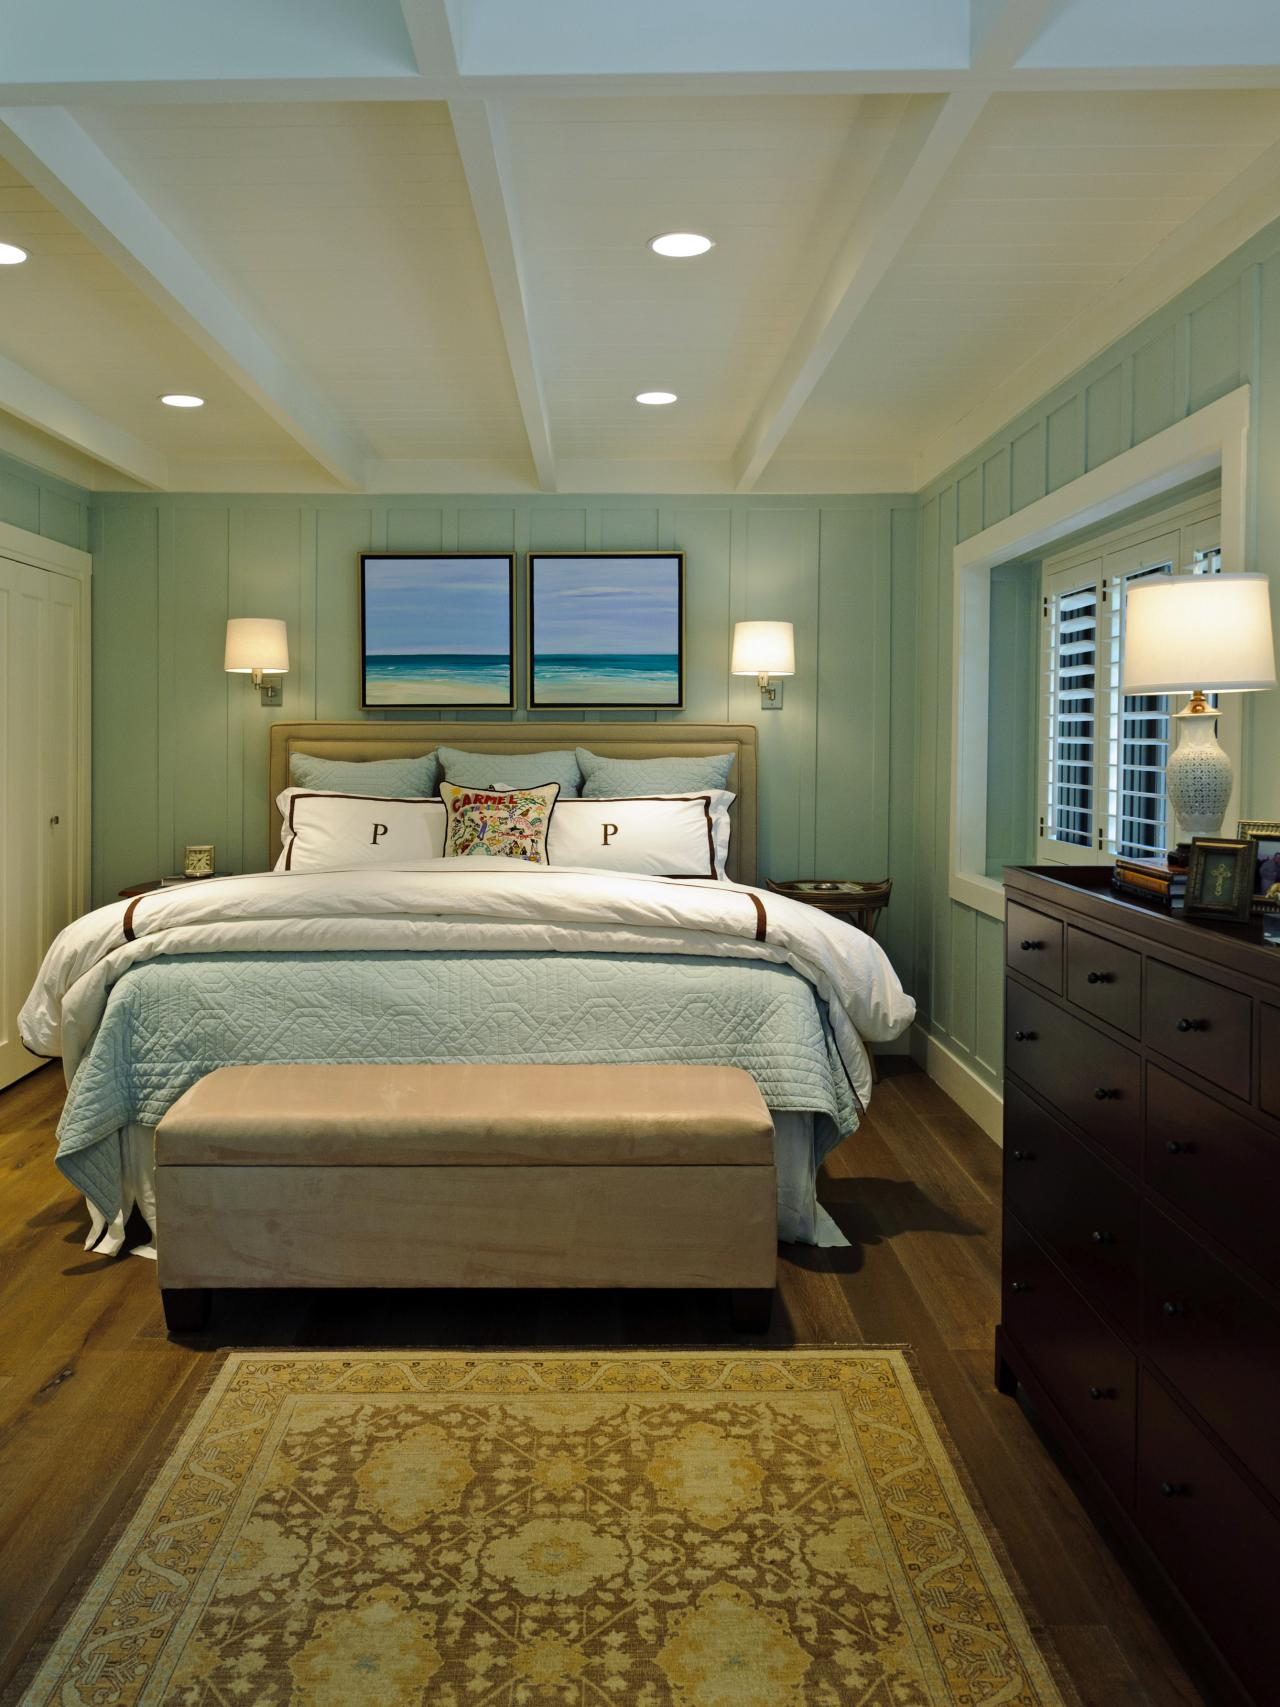 16 beach style bedroom decorating ideas. Black Bedroom Furniture Sets. Home Design Ideas